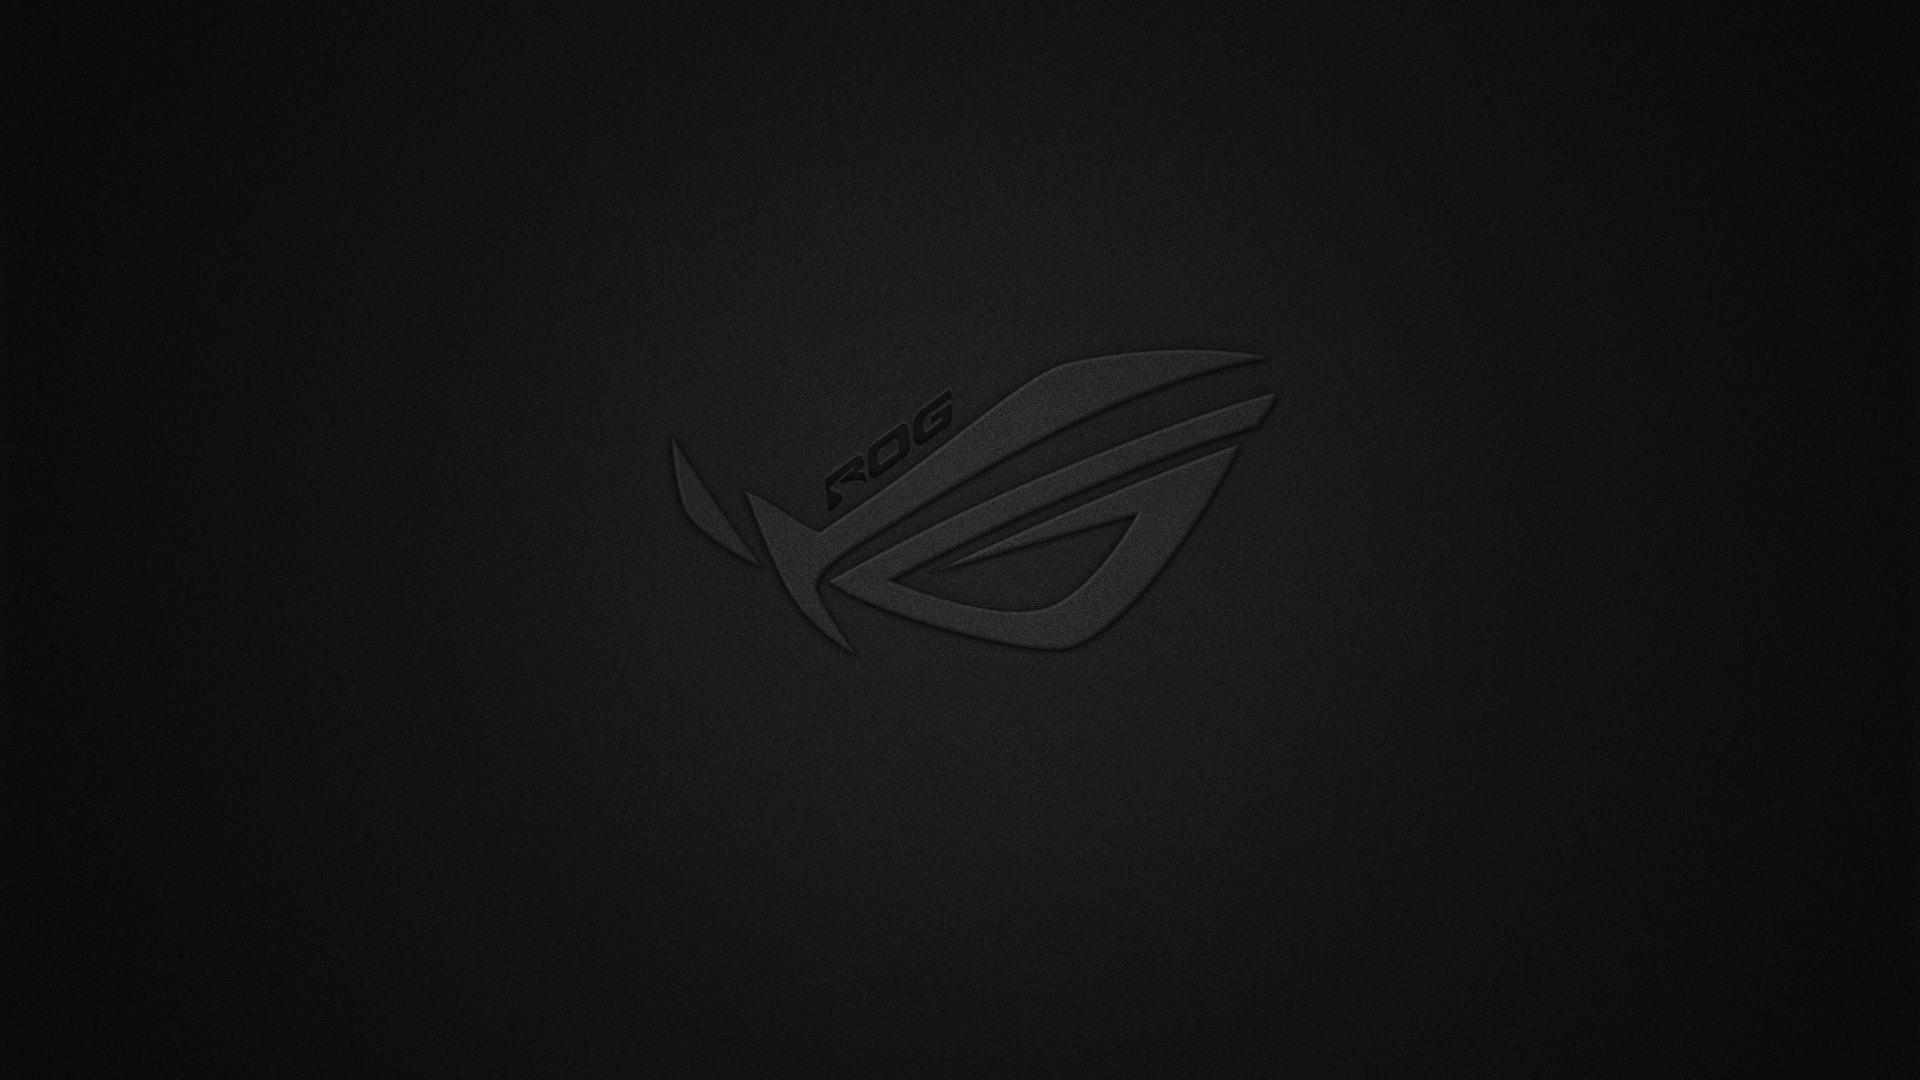 10 new rog wallpaper hd 1920x1080 full hd 1080p for pc background